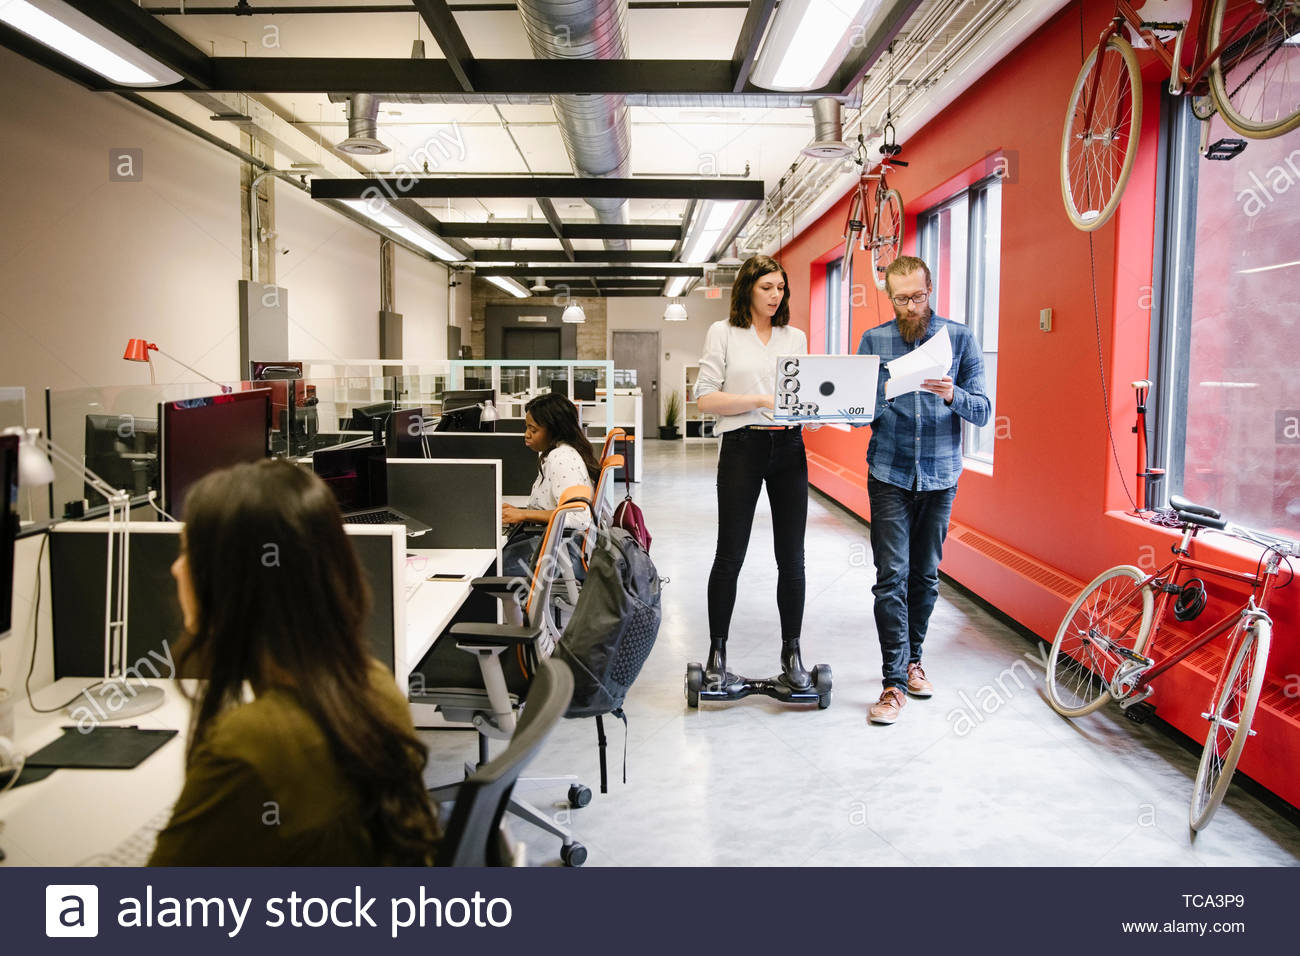 Businesswoman with laptop riding hover board in open plan office - Stock Image